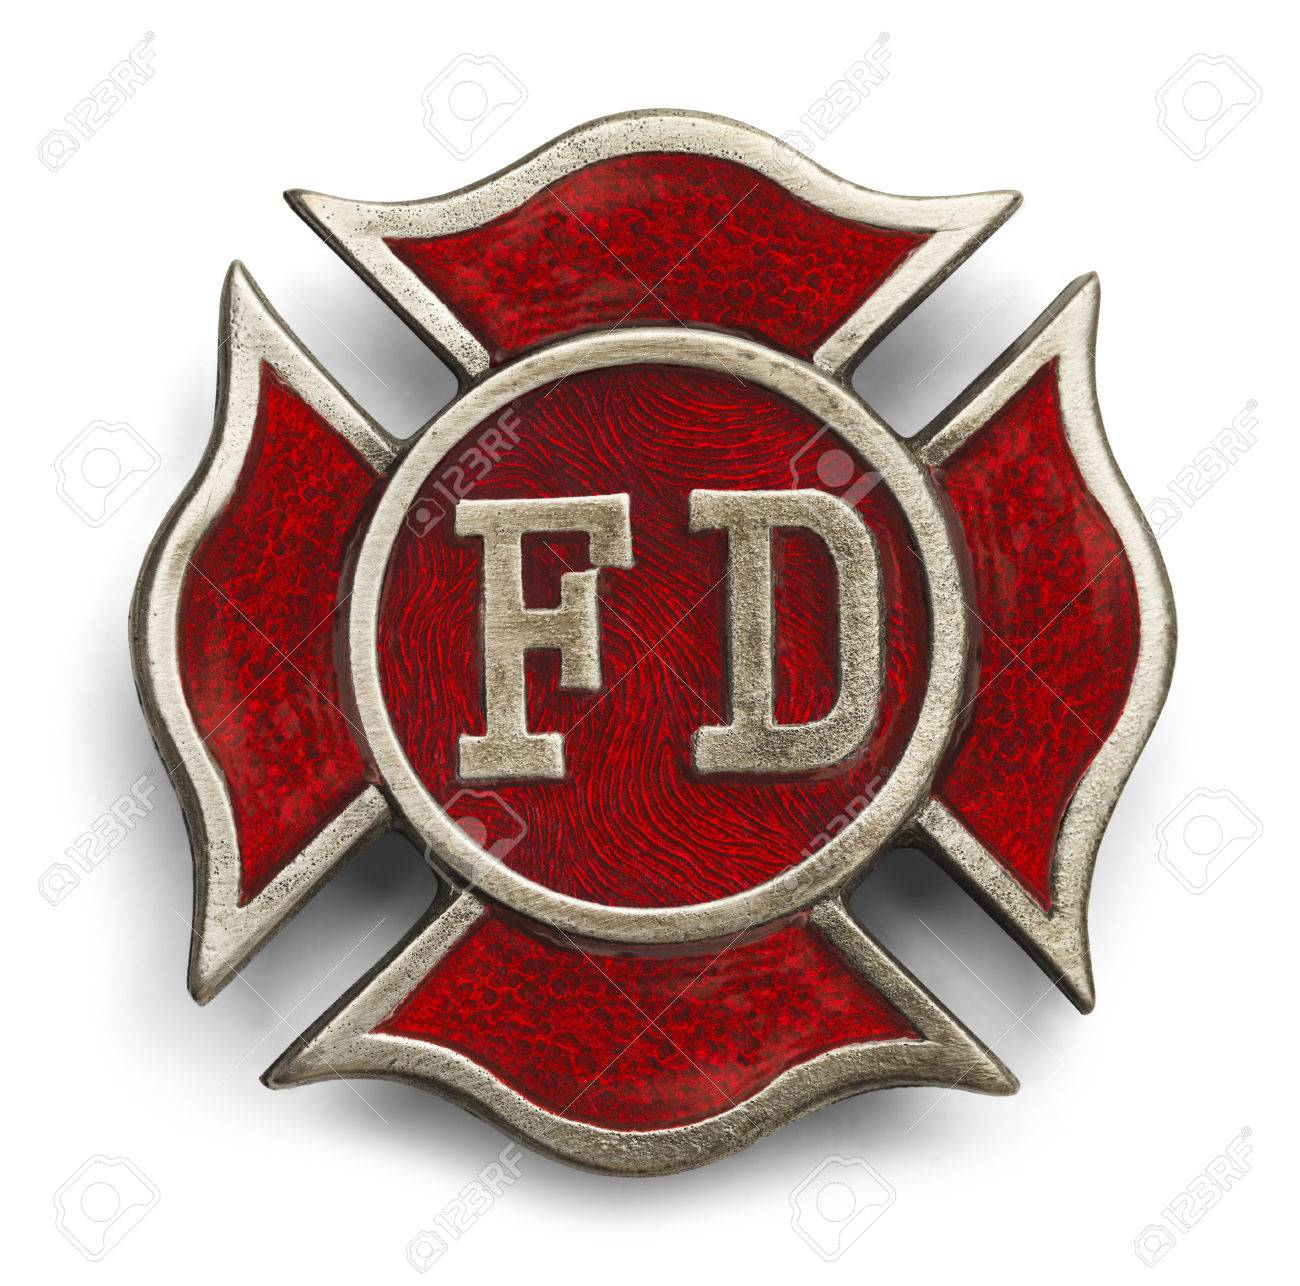 Red Cross Fire Fighter Symbol Isolated On White Background Stock